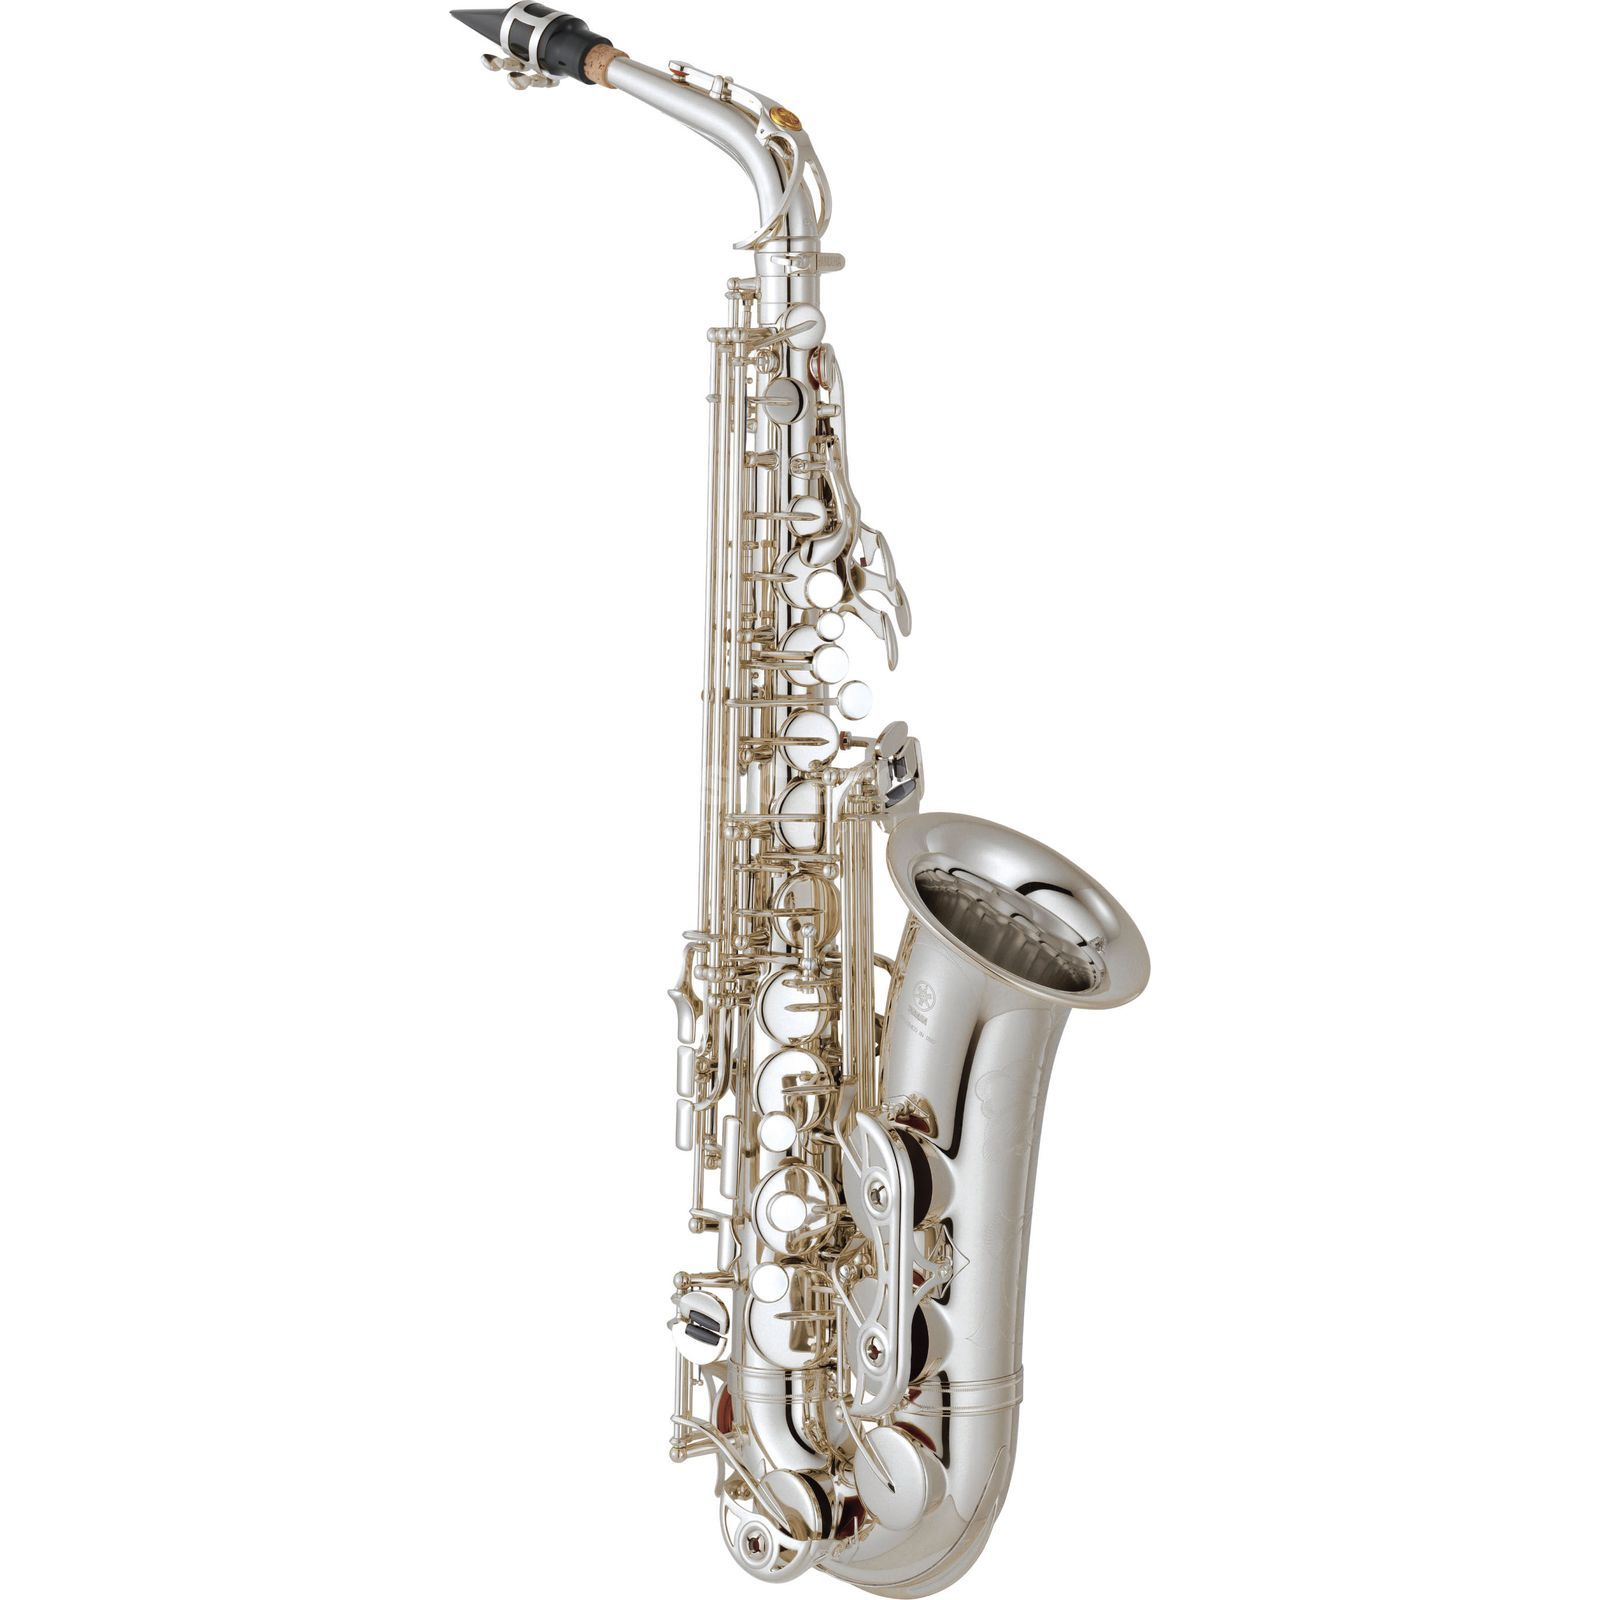 Yamaha YAS-62 02 S Alto Saxophone Pro Shop Series, Silver Plated Produktbillede